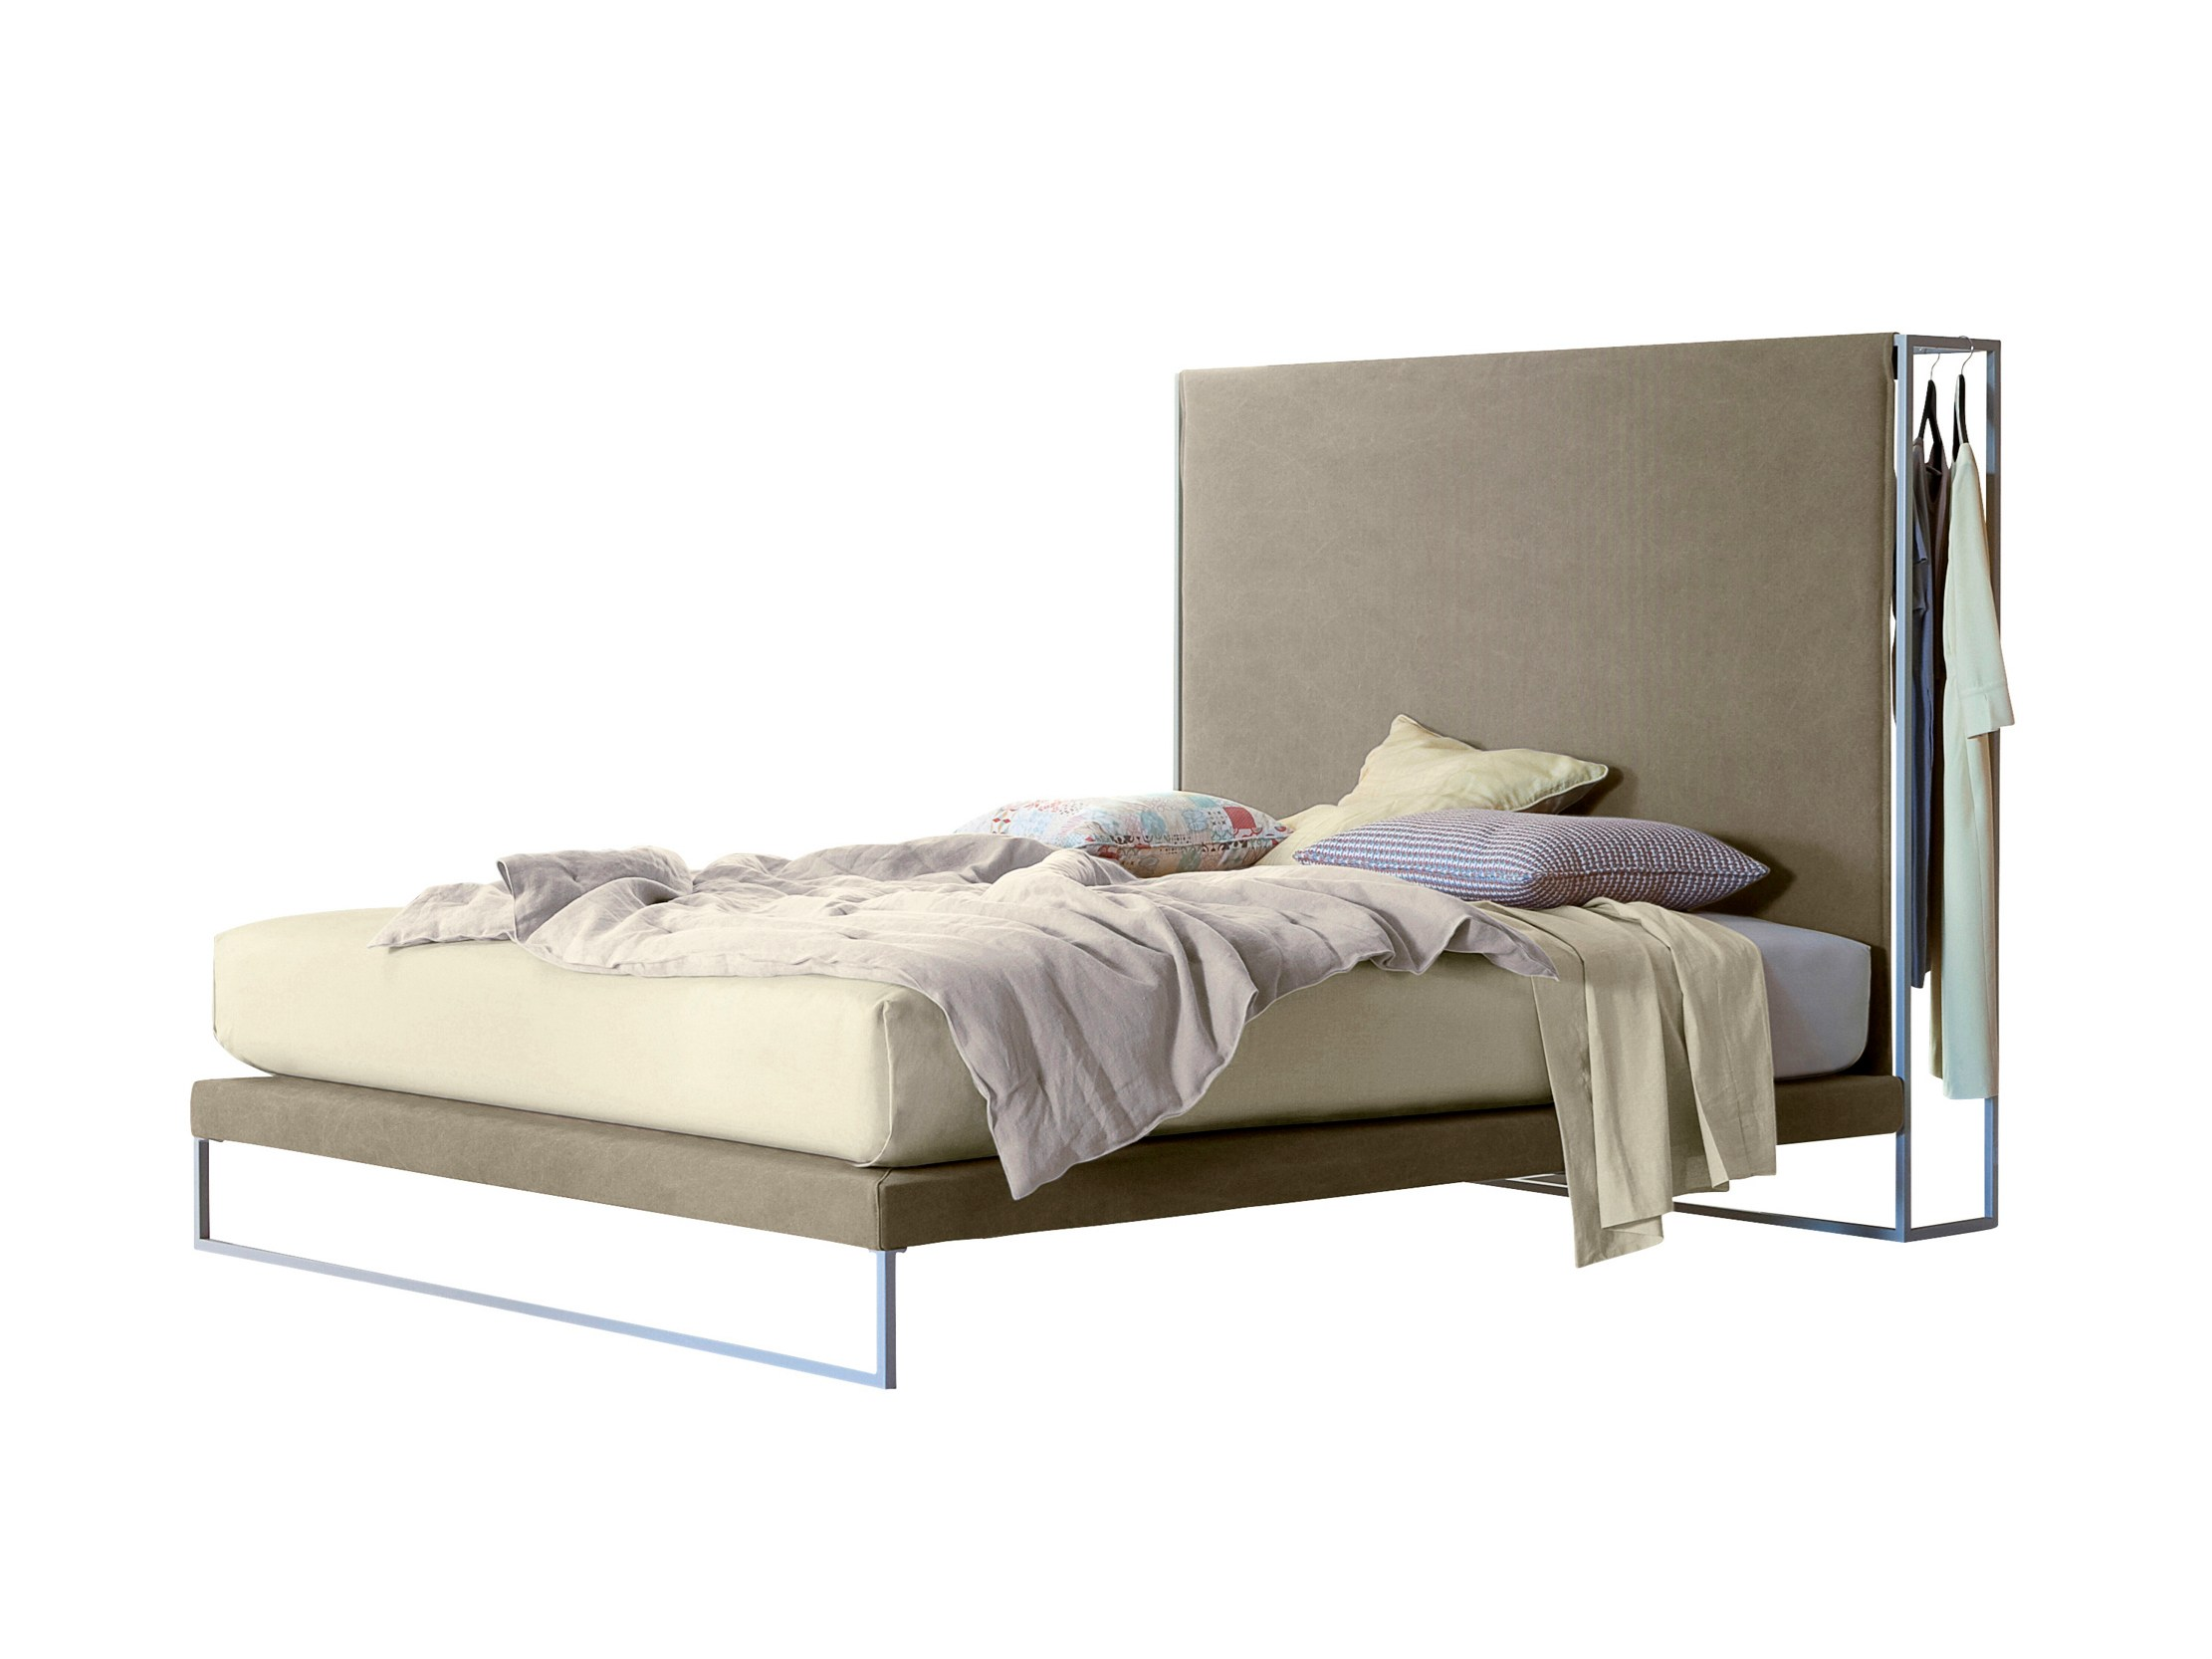 Letto con armadio frame by twils design monica graffeo for Letto con armadio